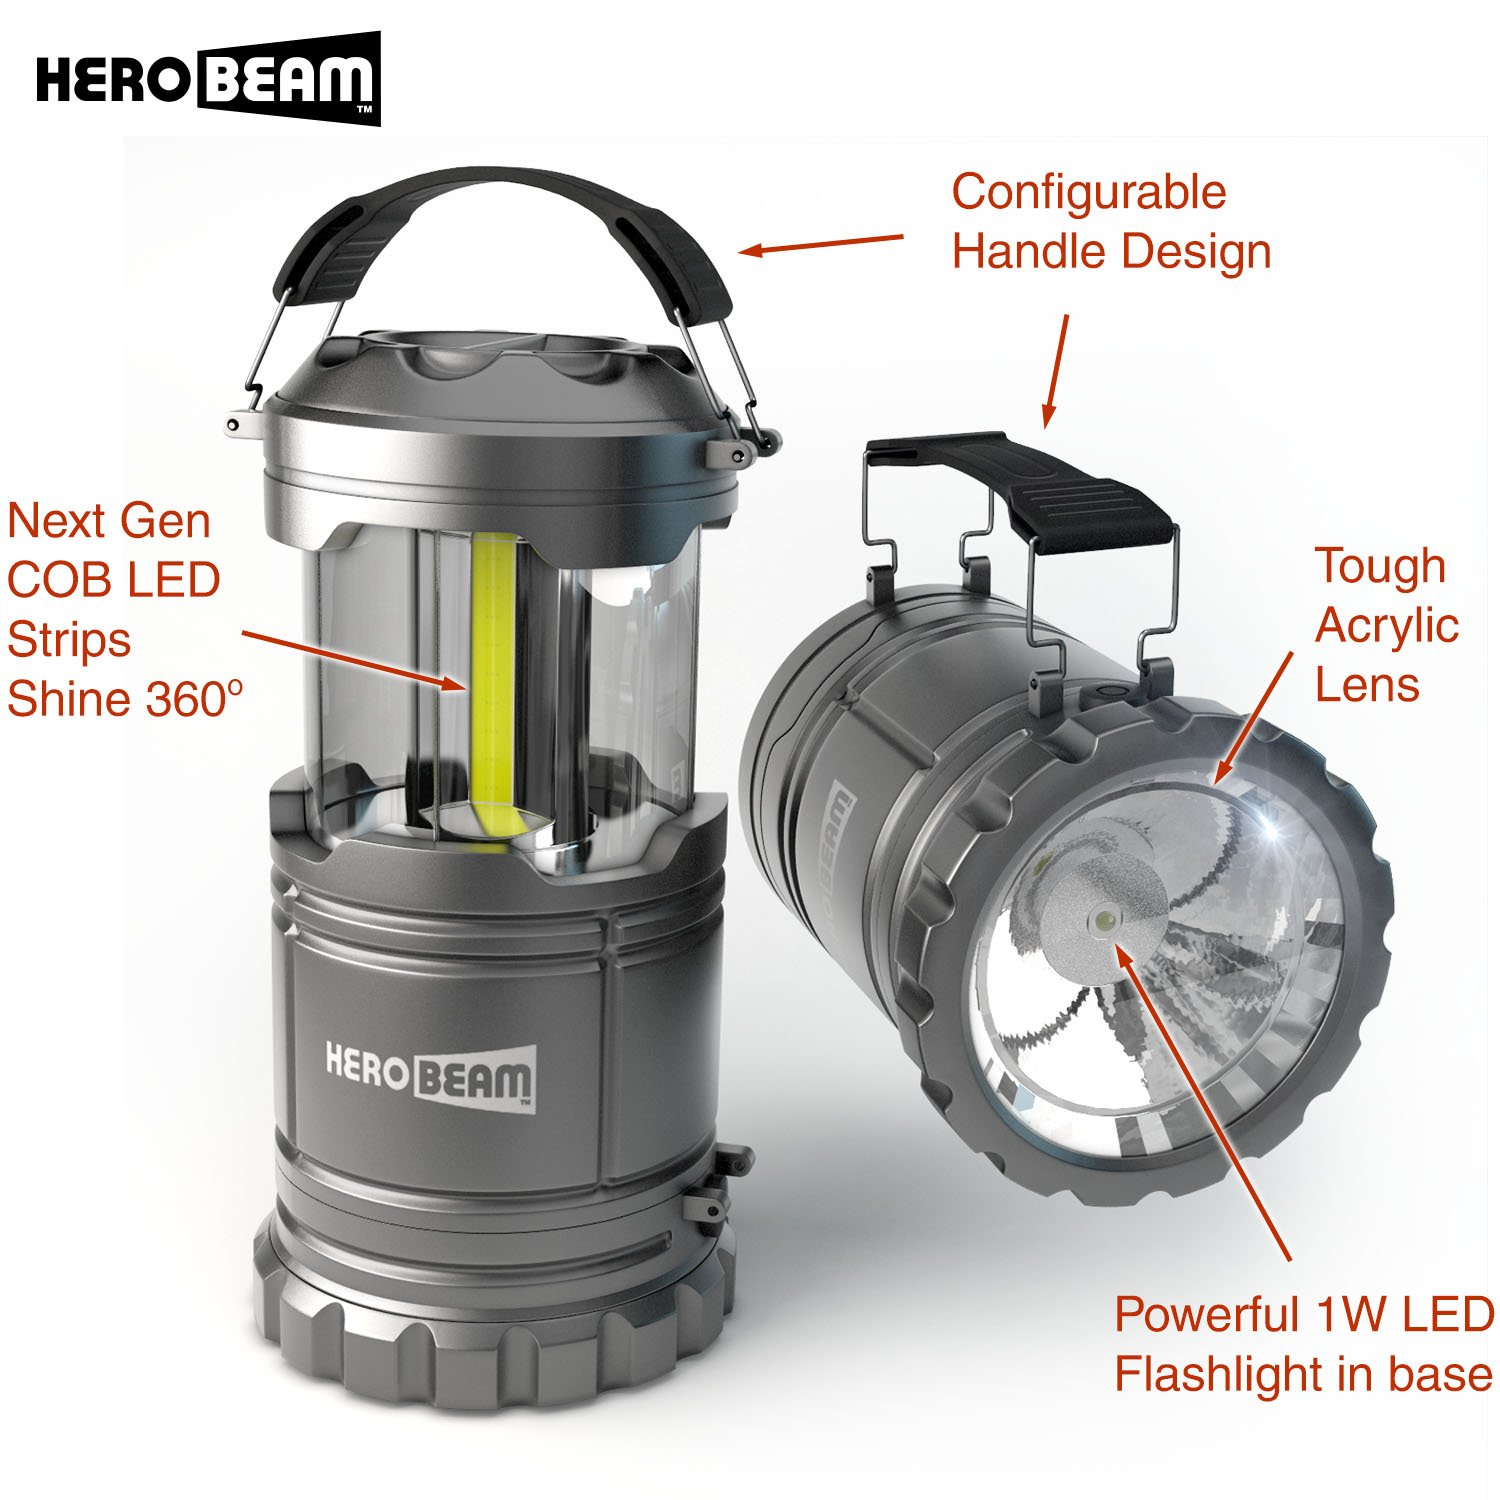 HeroBeam LED Lantern V2.0 with Flashlight – Latest COB Technology emits 300 LUMENS! – Collapsible Camp Lamp – Great Light for Camping, Car, Shop, Attic, Garage – 5 Year Warranty